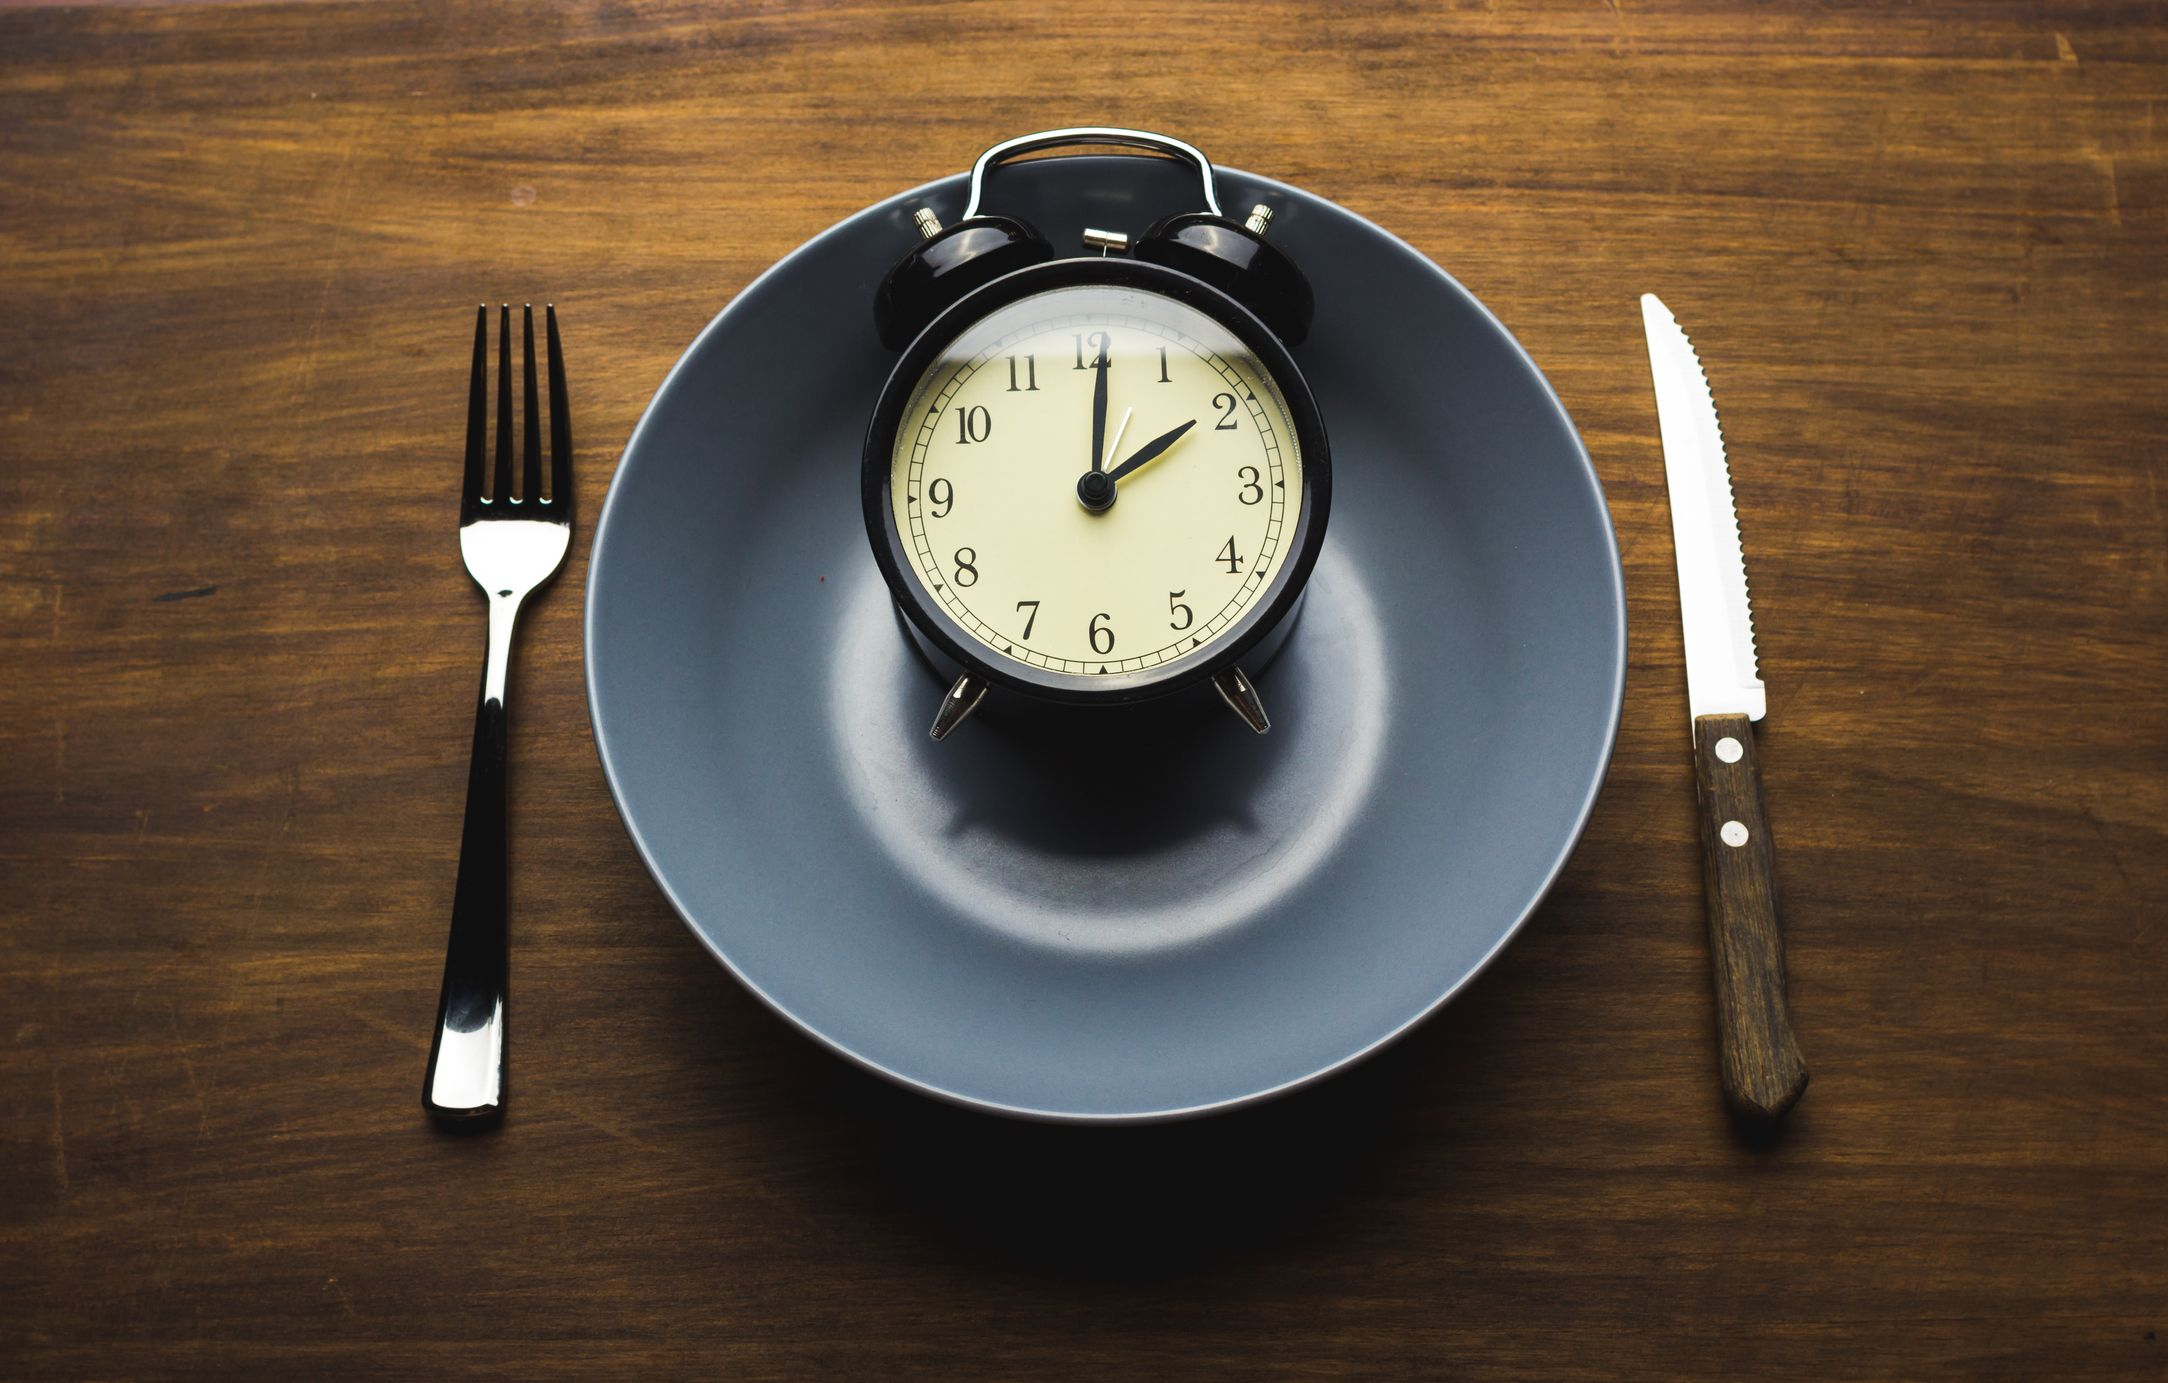 Intermittent Fasting and Weight Loss: 4 Things You Should Know